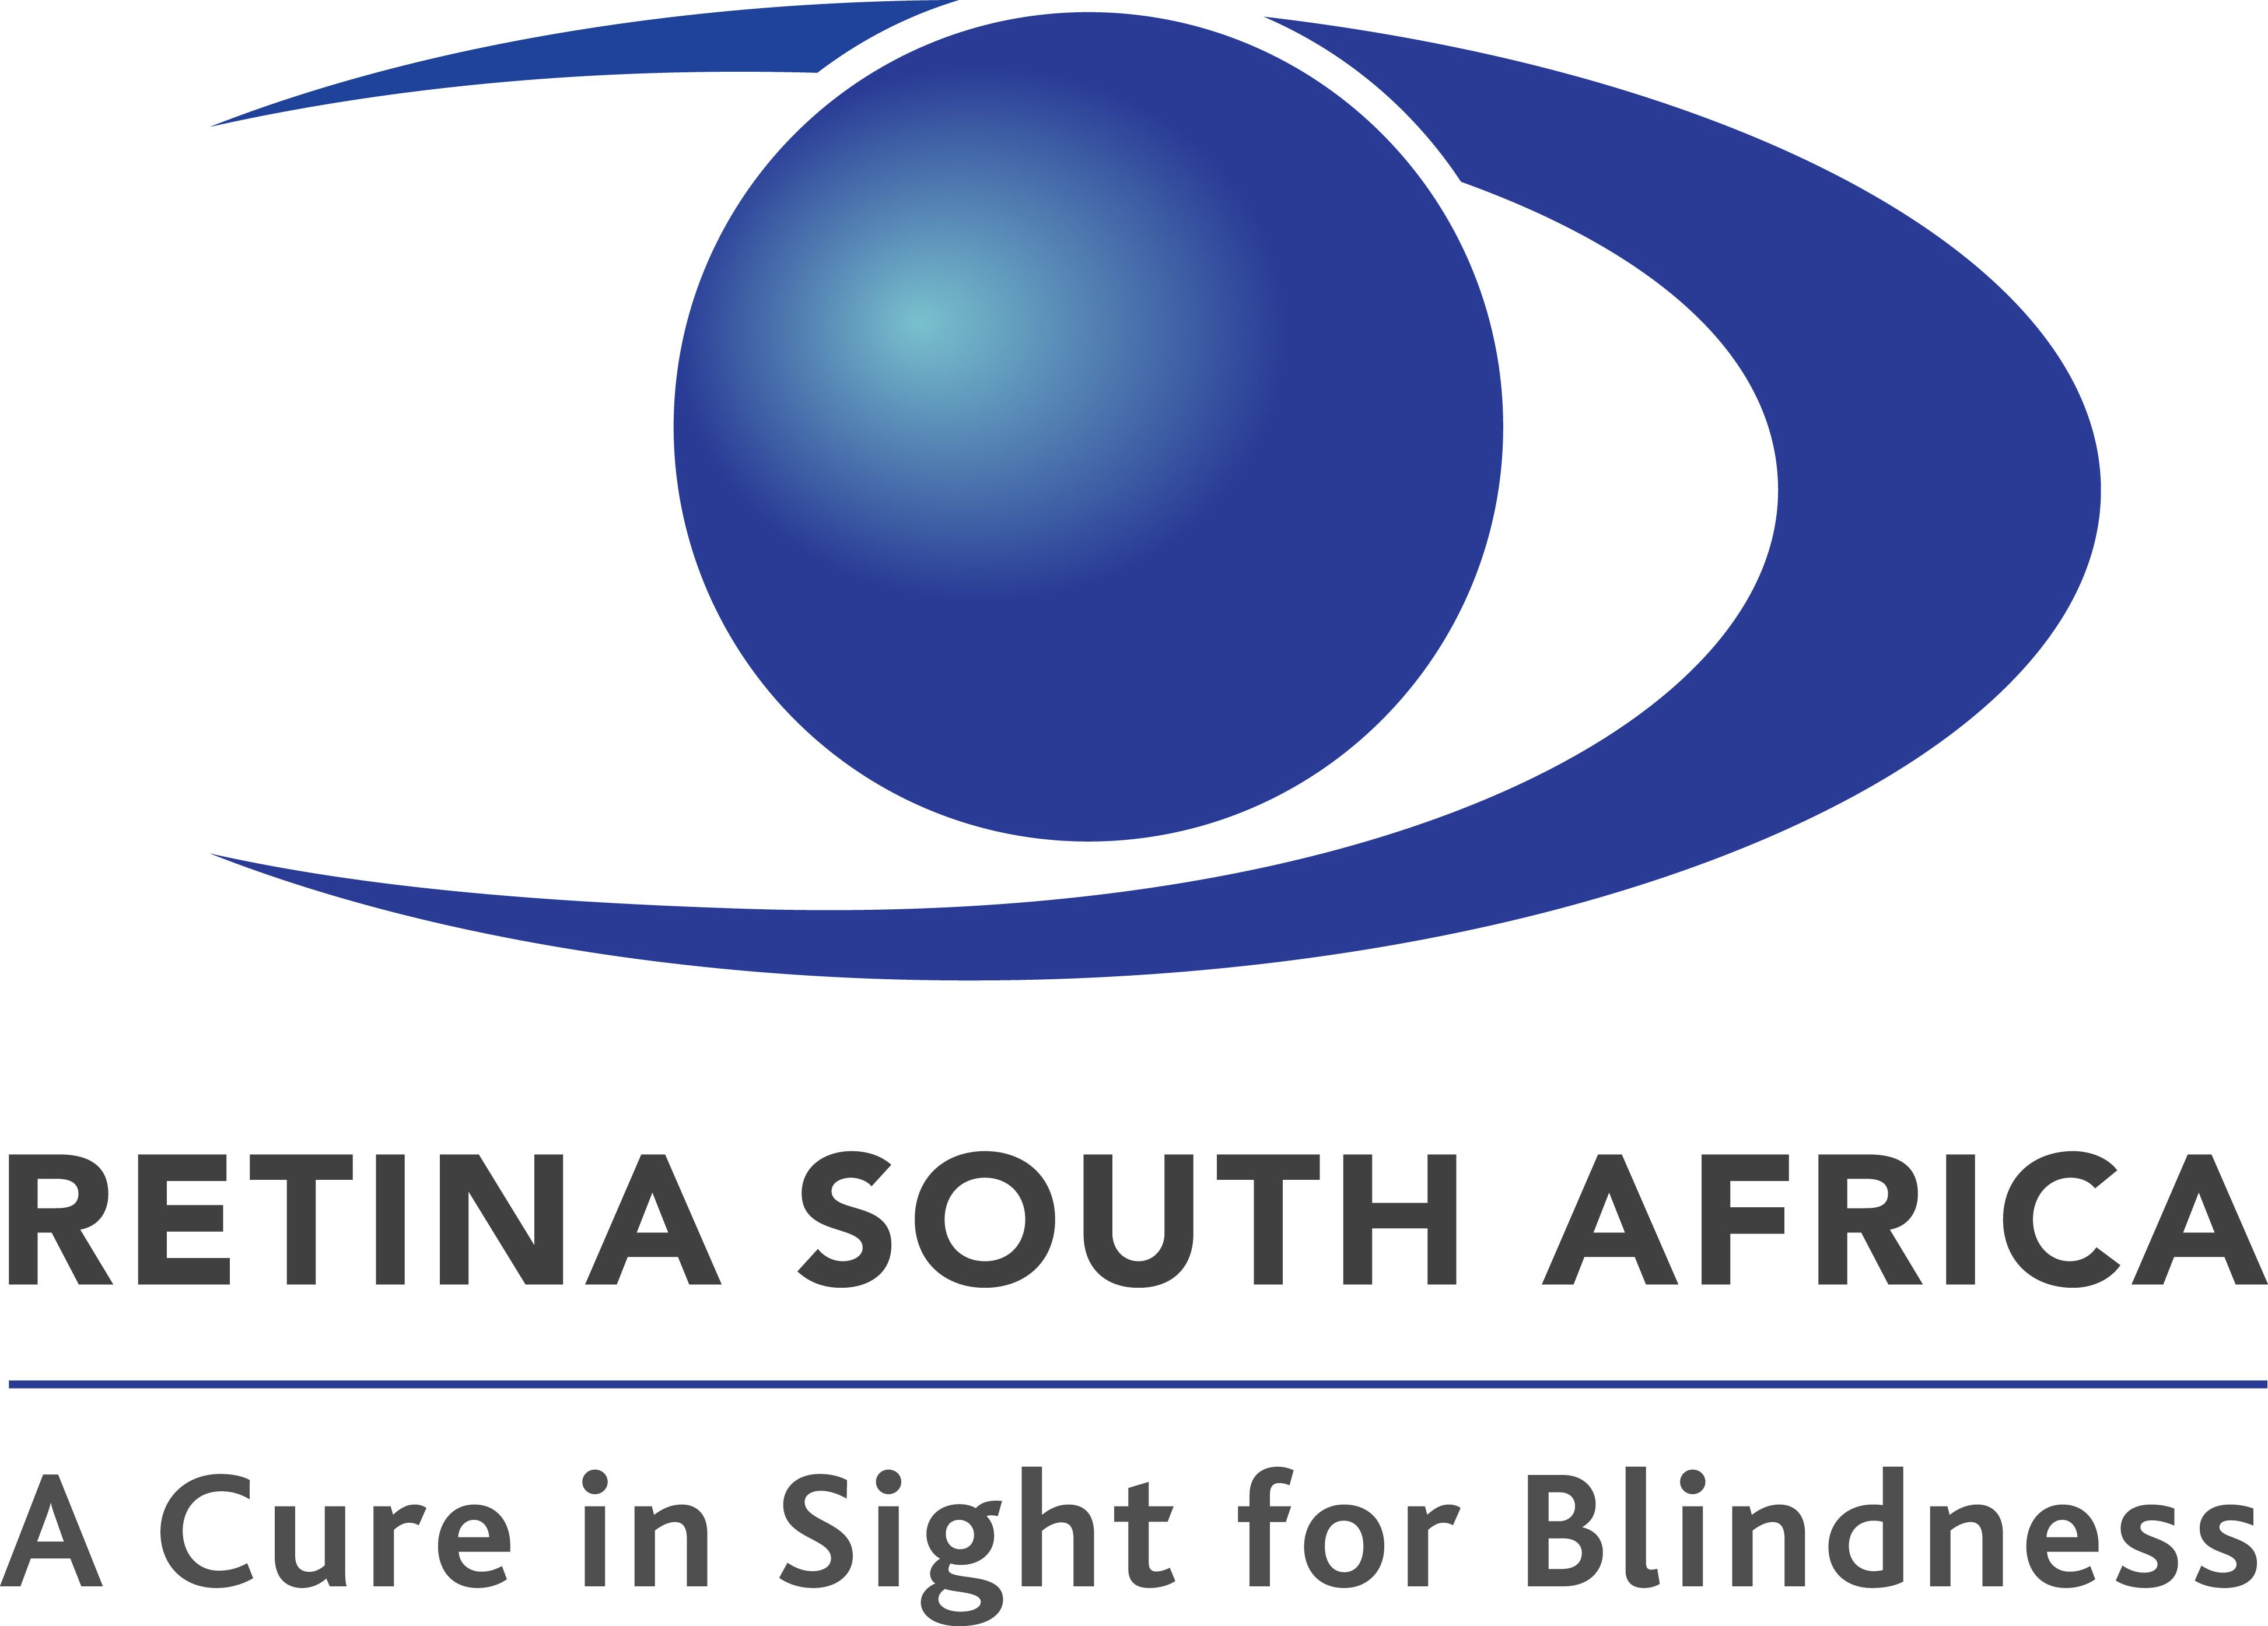 Retina South Africa Eastern Cape Branch Thumb Image